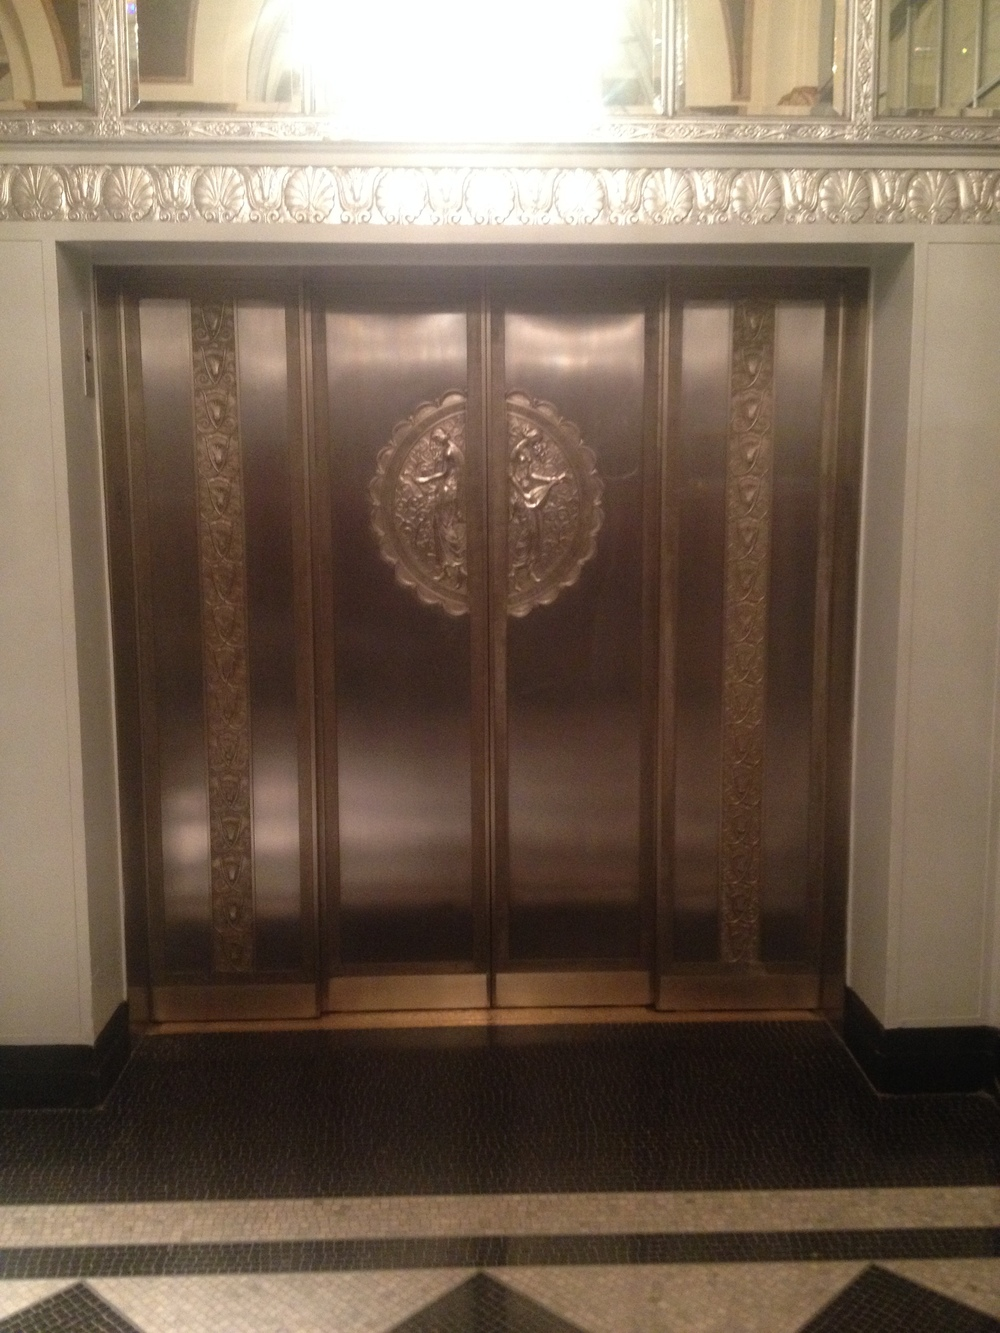 A discounted stay at the Waldorf Astoria.  Here are doors to one set of elevators.